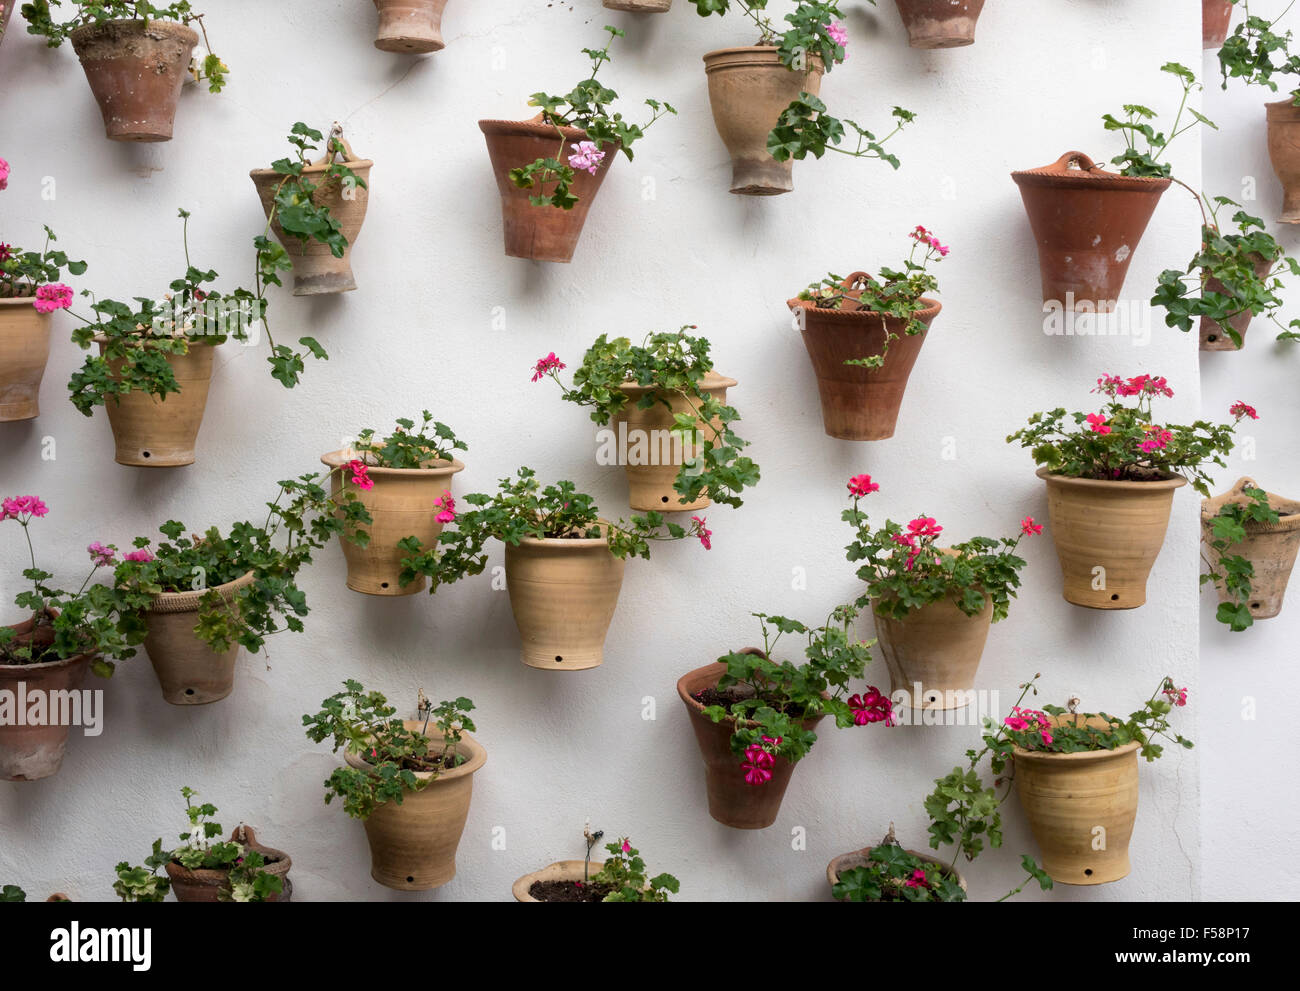 Courtyard garden, vertical gardening - flowers in plant pots attached to a white wall - Stock Image